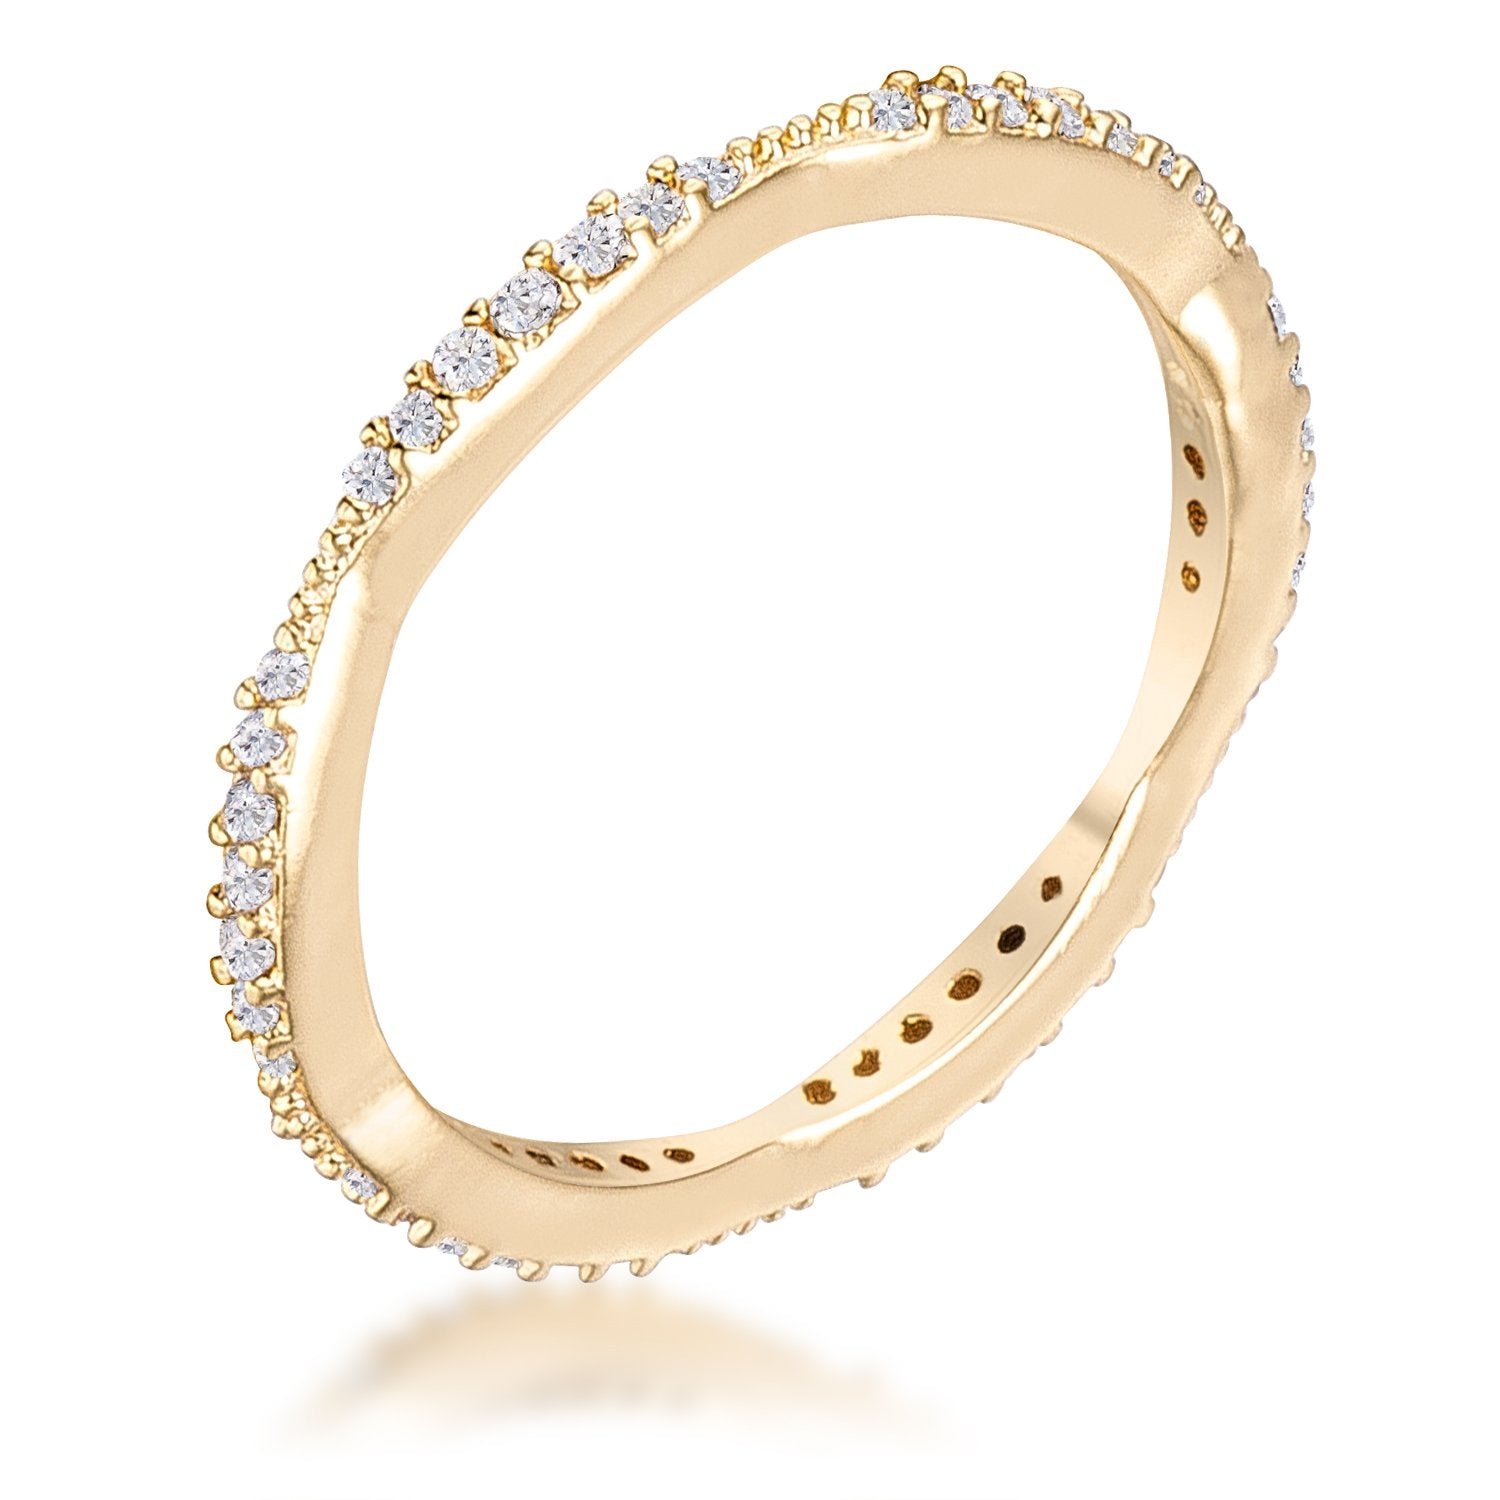 .42Ct Dainty 18k Gold Plated Micro Pave CZ Stackable Eternity Ring - Opulent Lifestyle